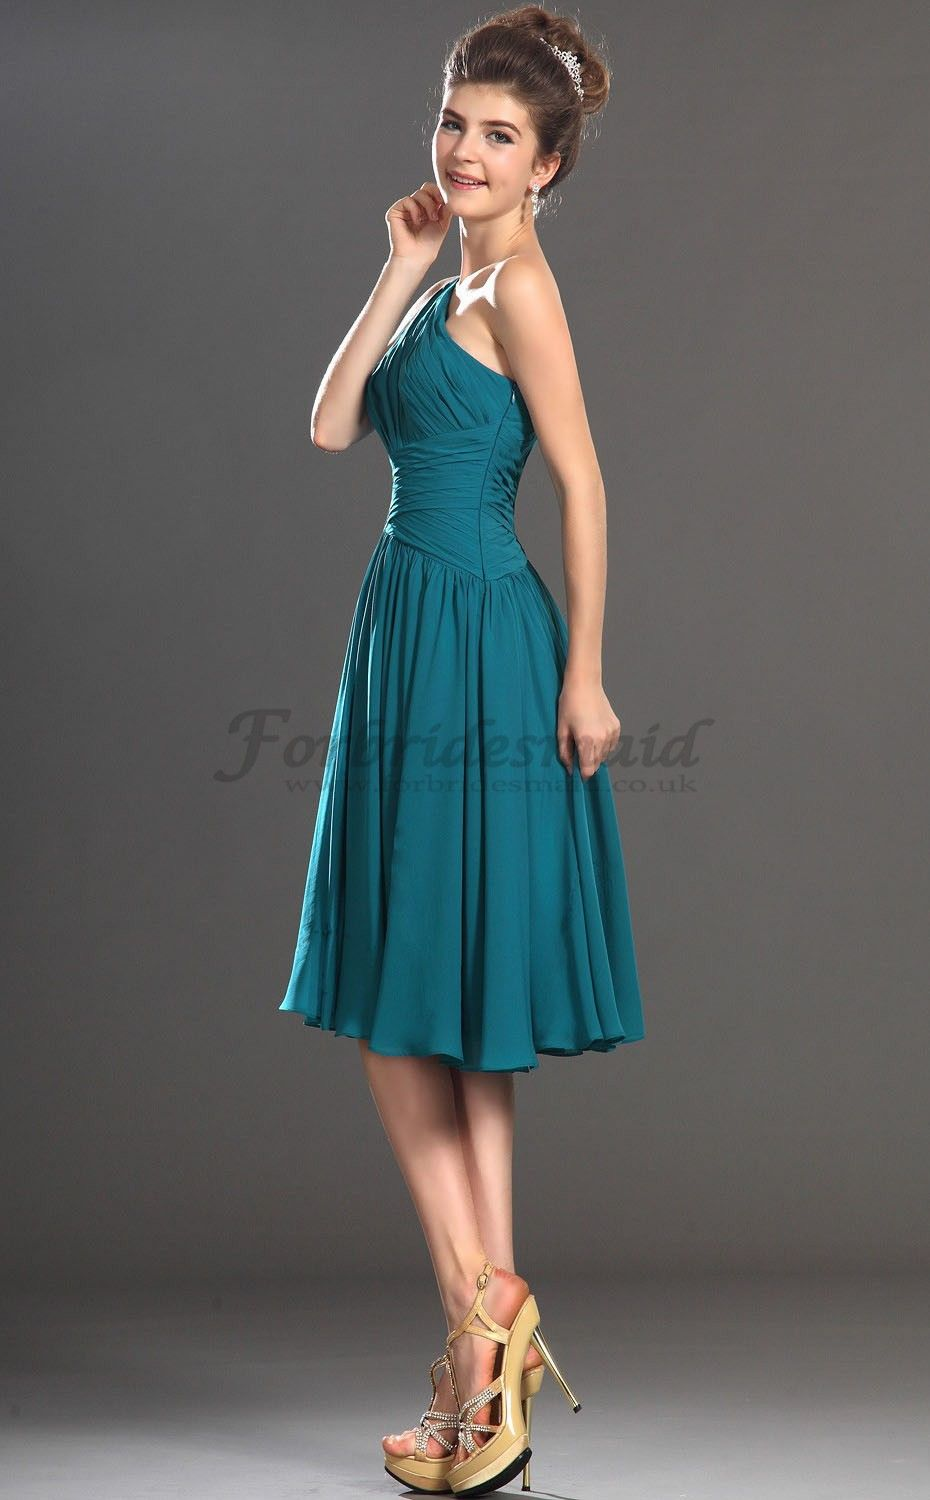 Deep turquoise bridesmaid dresses image collections braidsmaid deep turquoise bridesmaid dresses choice image braidsmaid dress deep turquoise bridesmaid dresses image collections braidsmaid deep ombrellifo Image collections